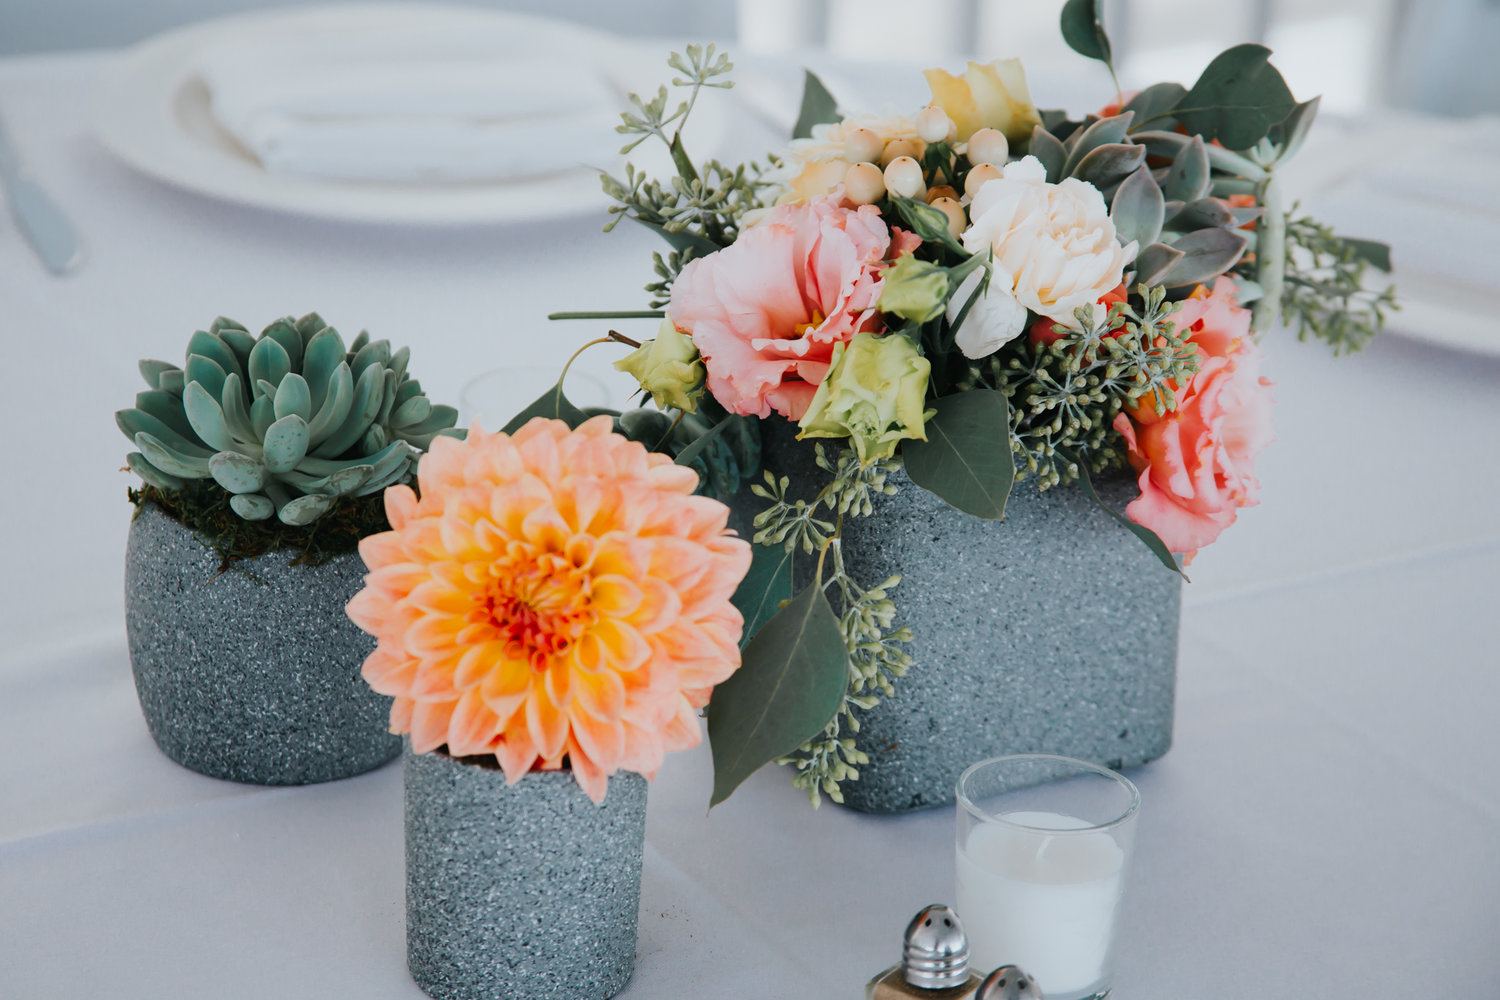 Reception Centerpieces starts at $75